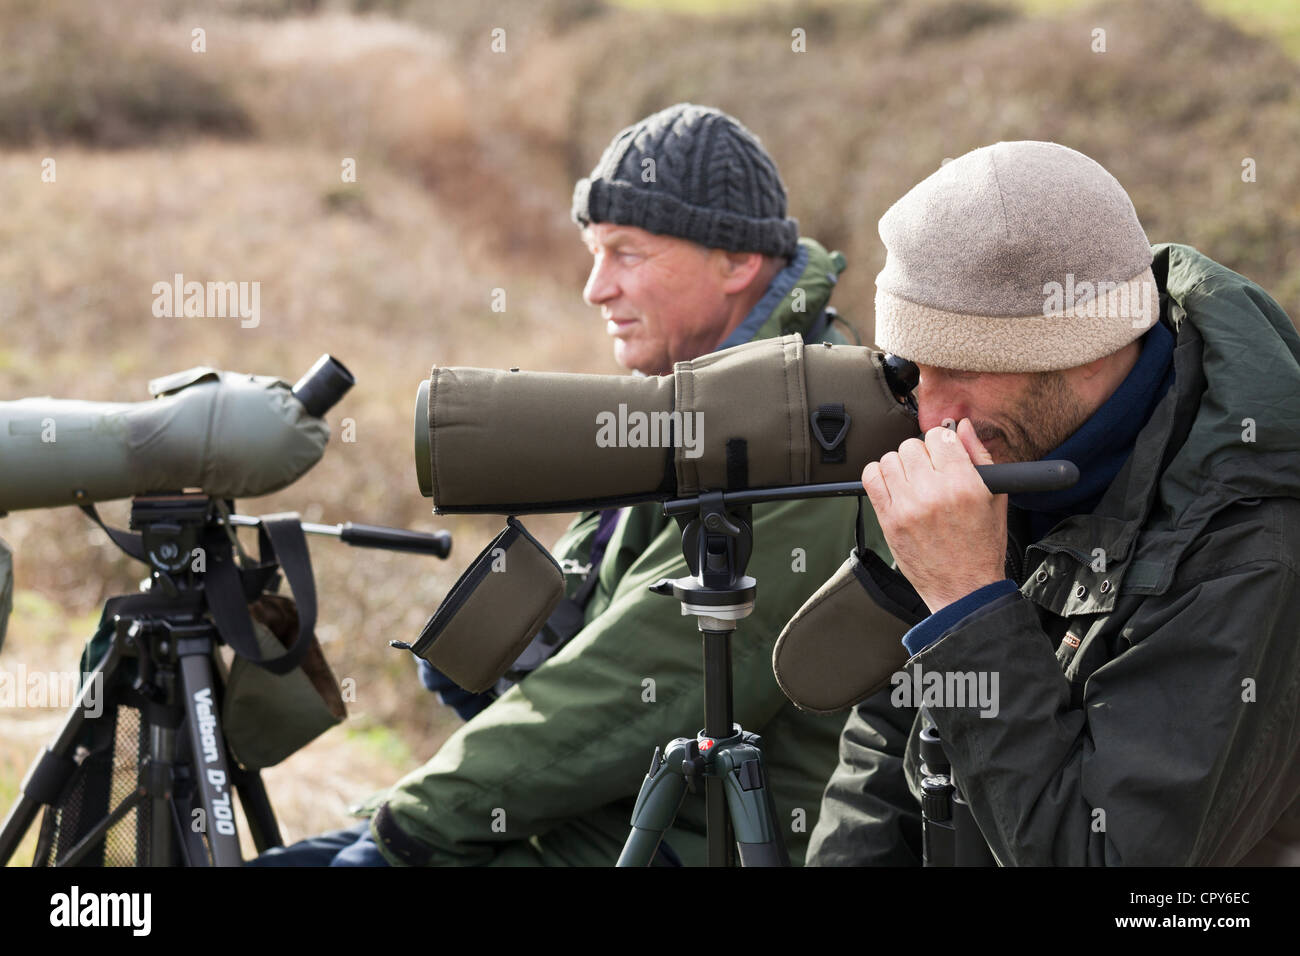 bird watchers with telescope on tripod in winter - Stock Image